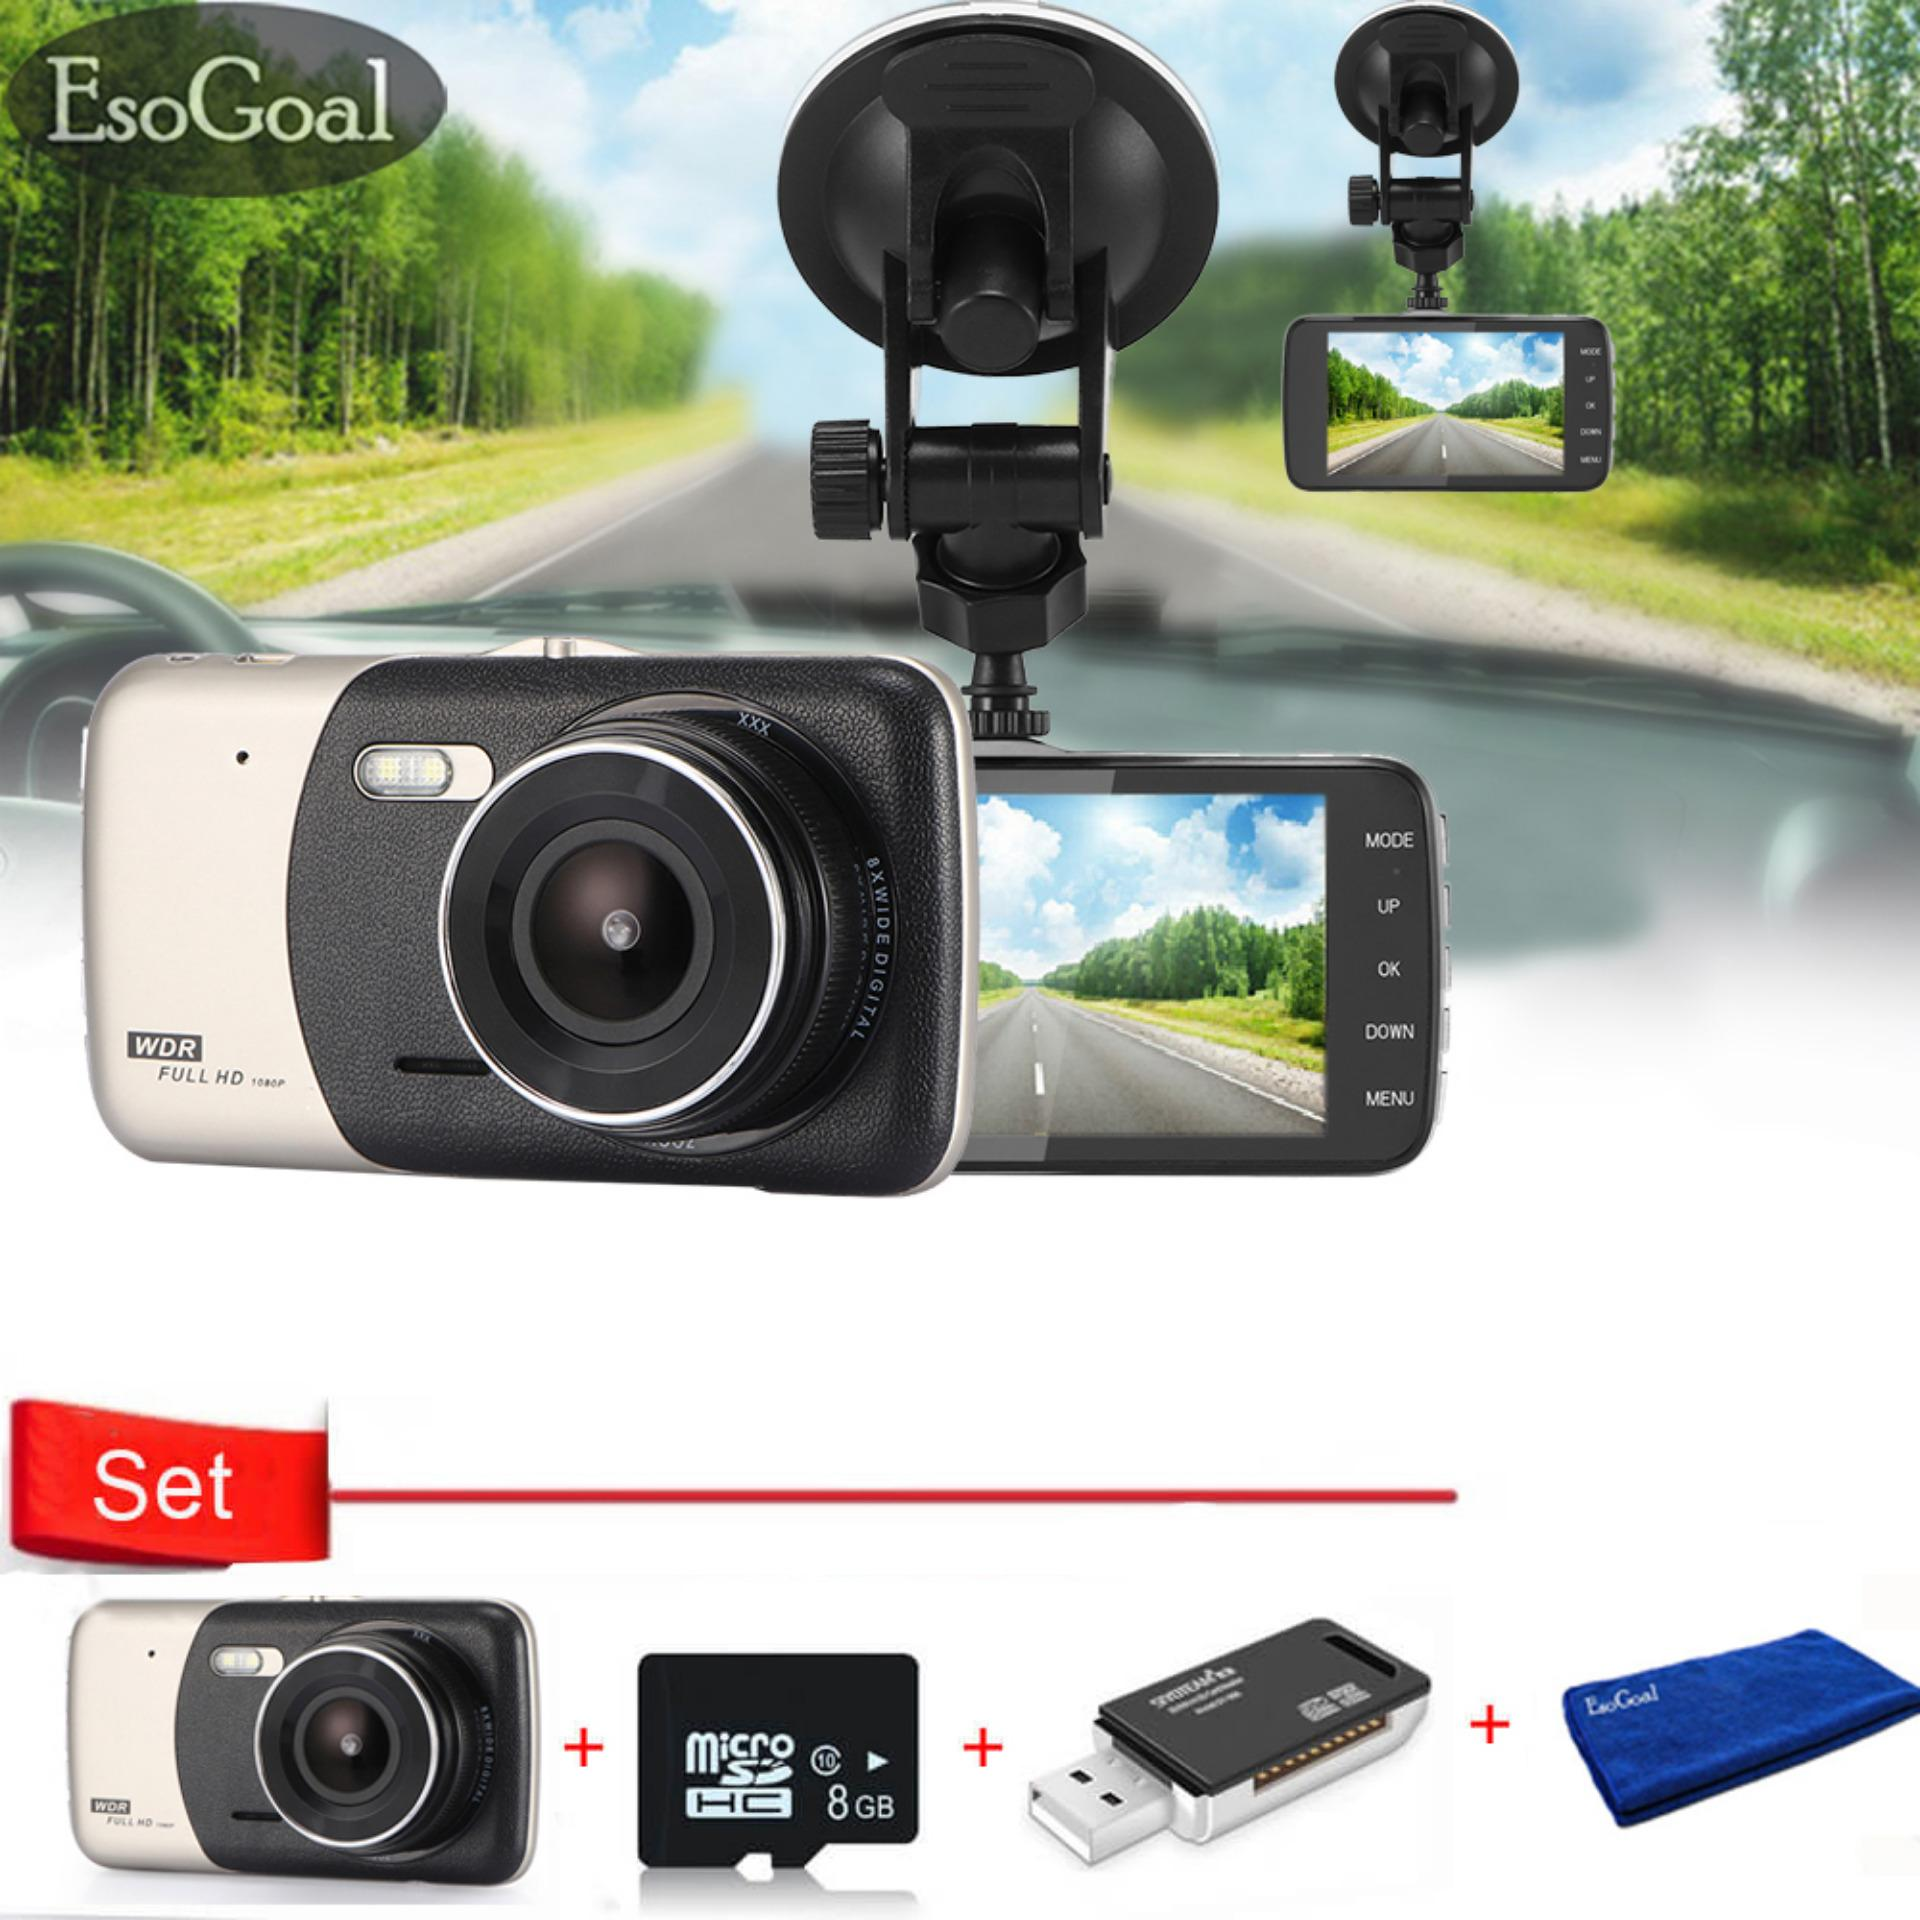 Beli Esogoal 4 Dash Cam Front And Rear Dual Lens Camera Night Vision 1080P 140 Car Dvr Video Recorder G Sensor Vehicle Camera And Micro C 10 8G Memory Card And Usb 2 Sd Card Reader Kredit